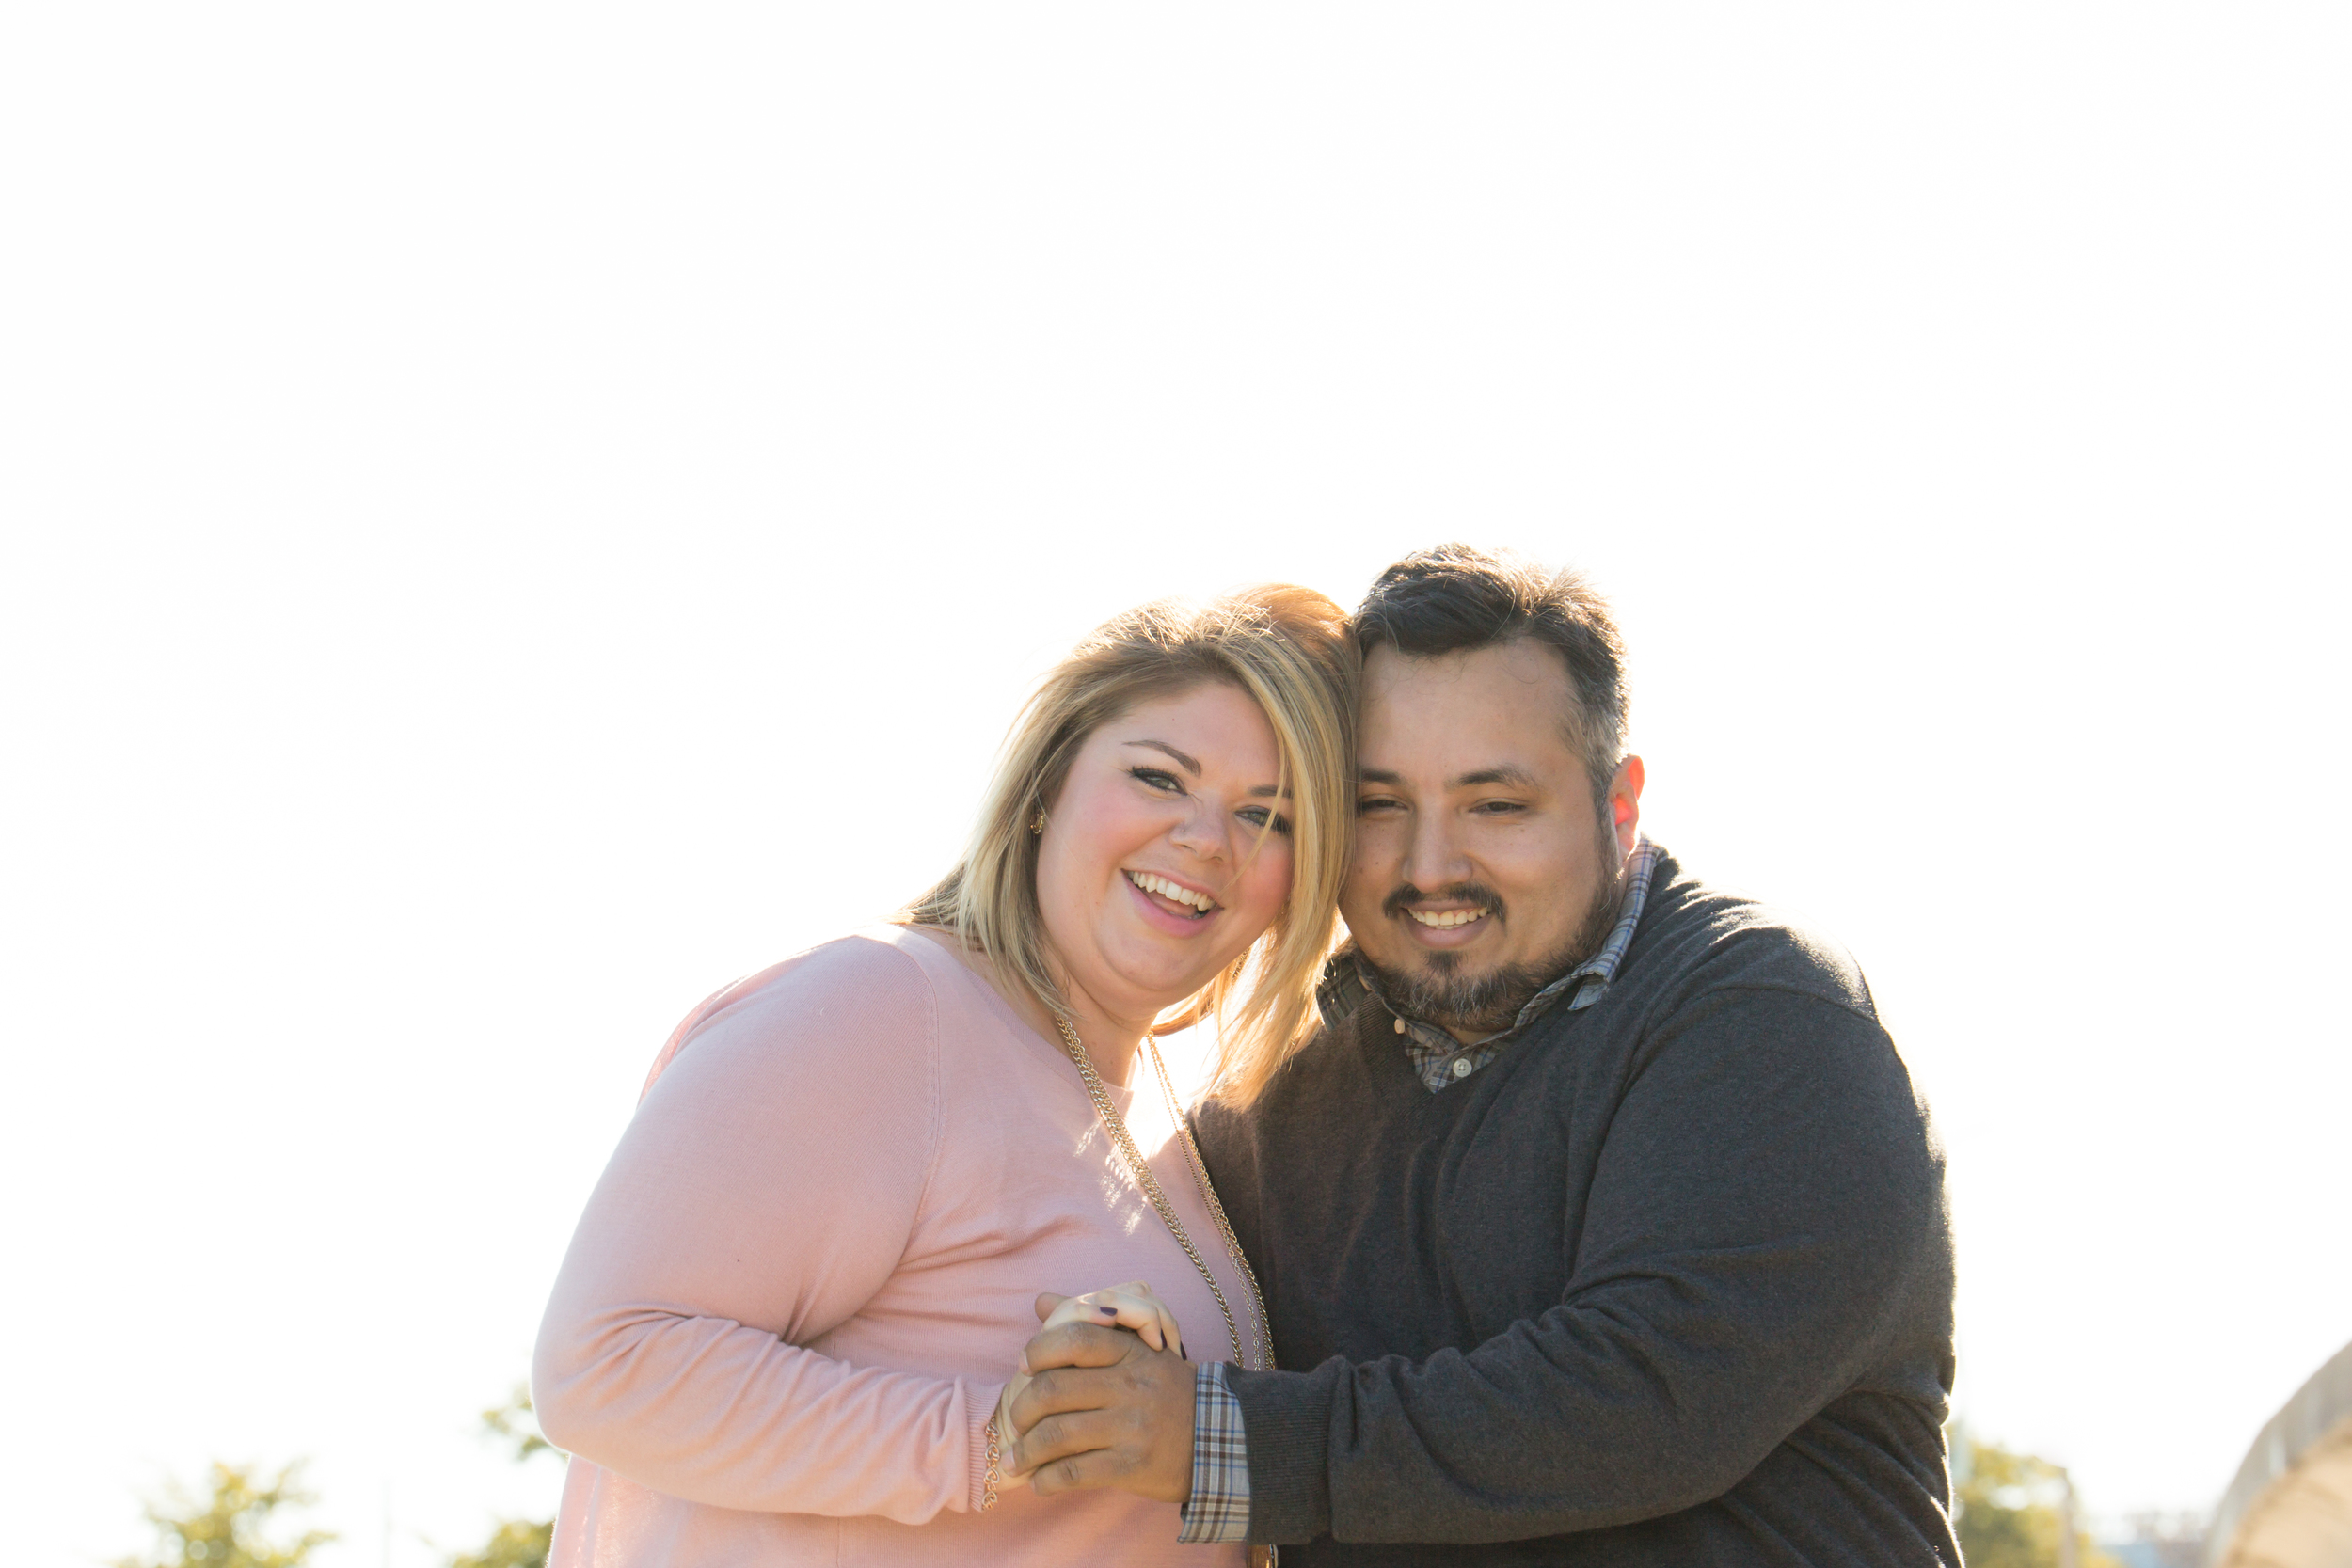 Nickie & Hector_Chicago Engagement_Oct 2015 (13 of 44).jpg